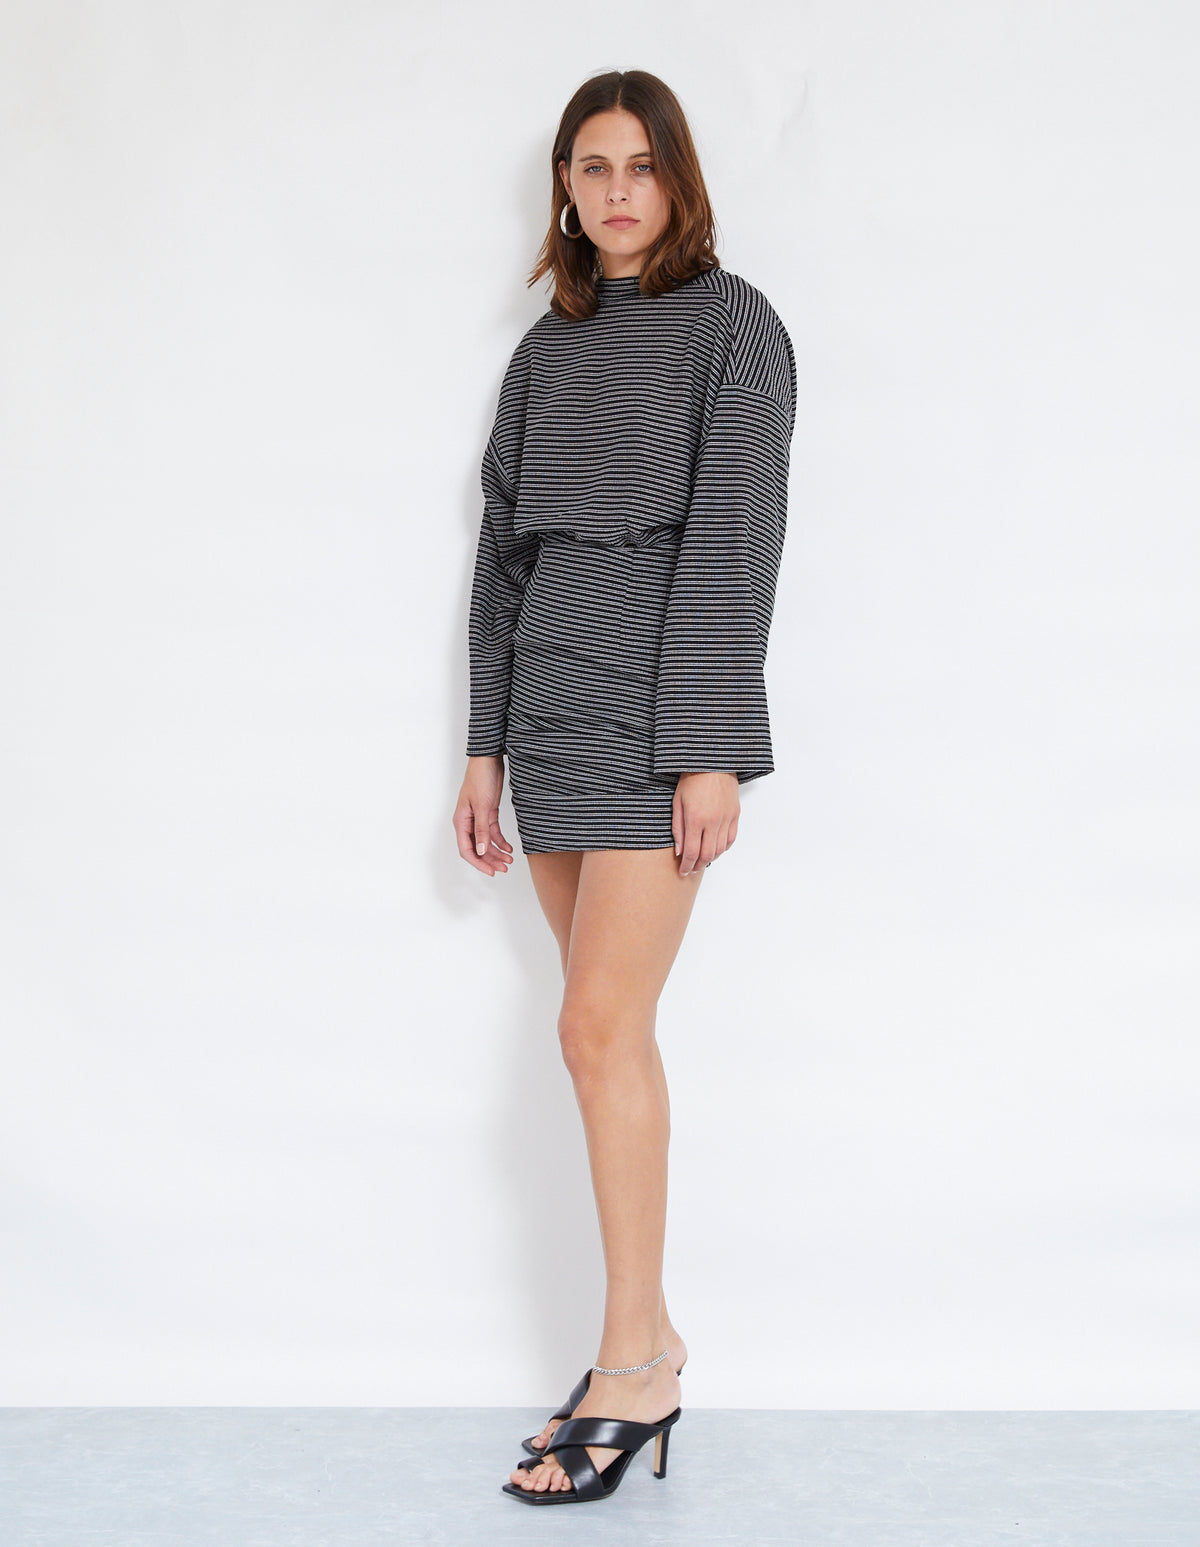 CHAMBERLAIN MINI DRESS